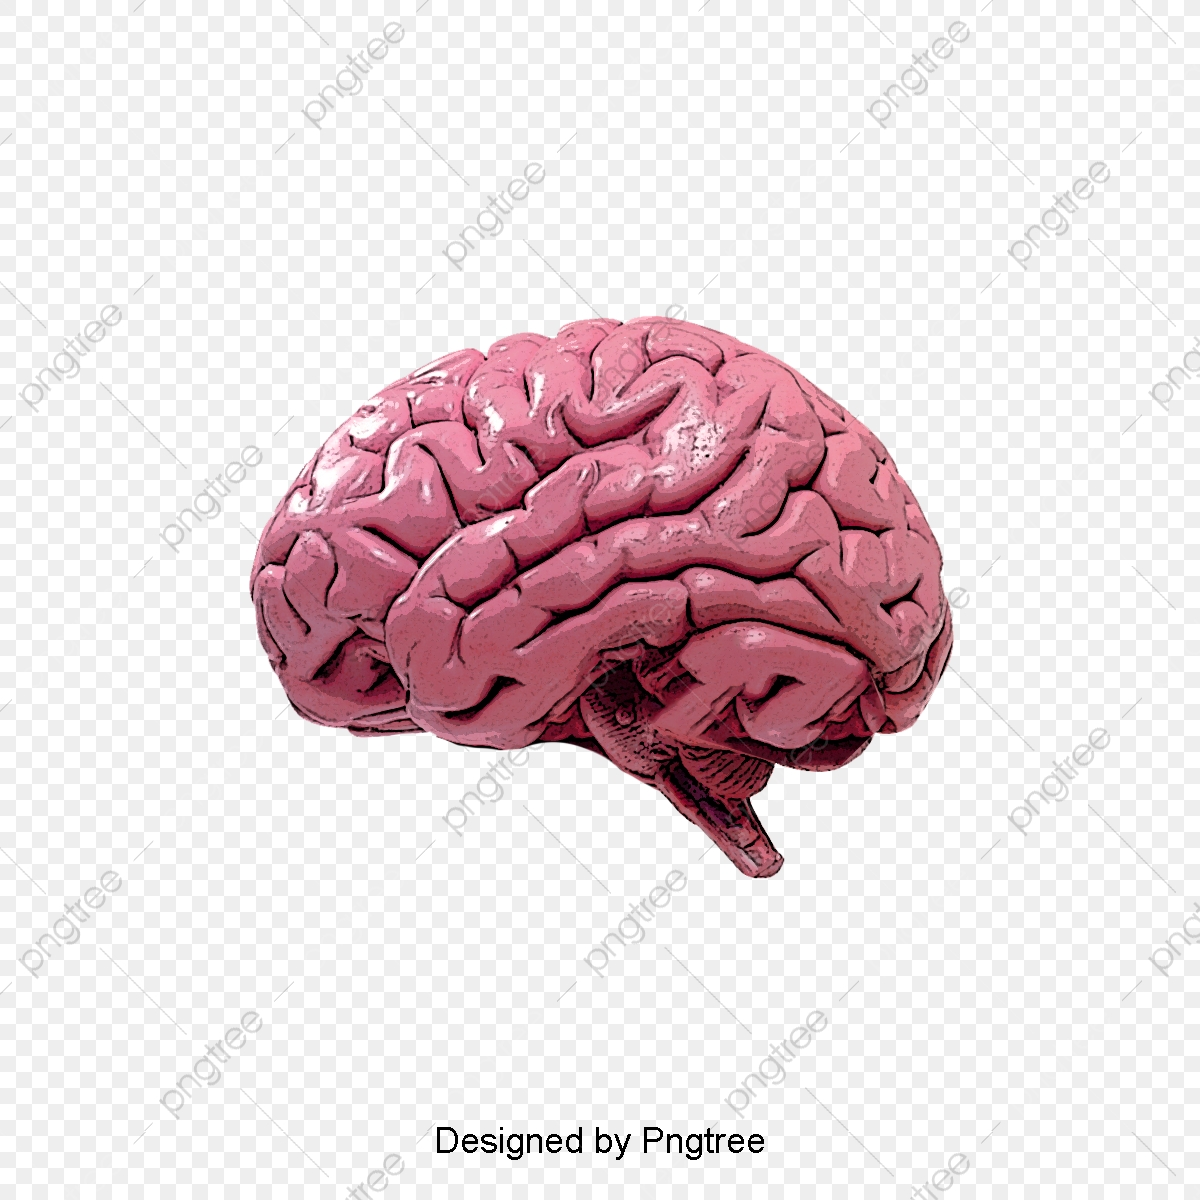 Human Brain, Brain Clipart, Humanity, Brain PNG Transparent Clipart.